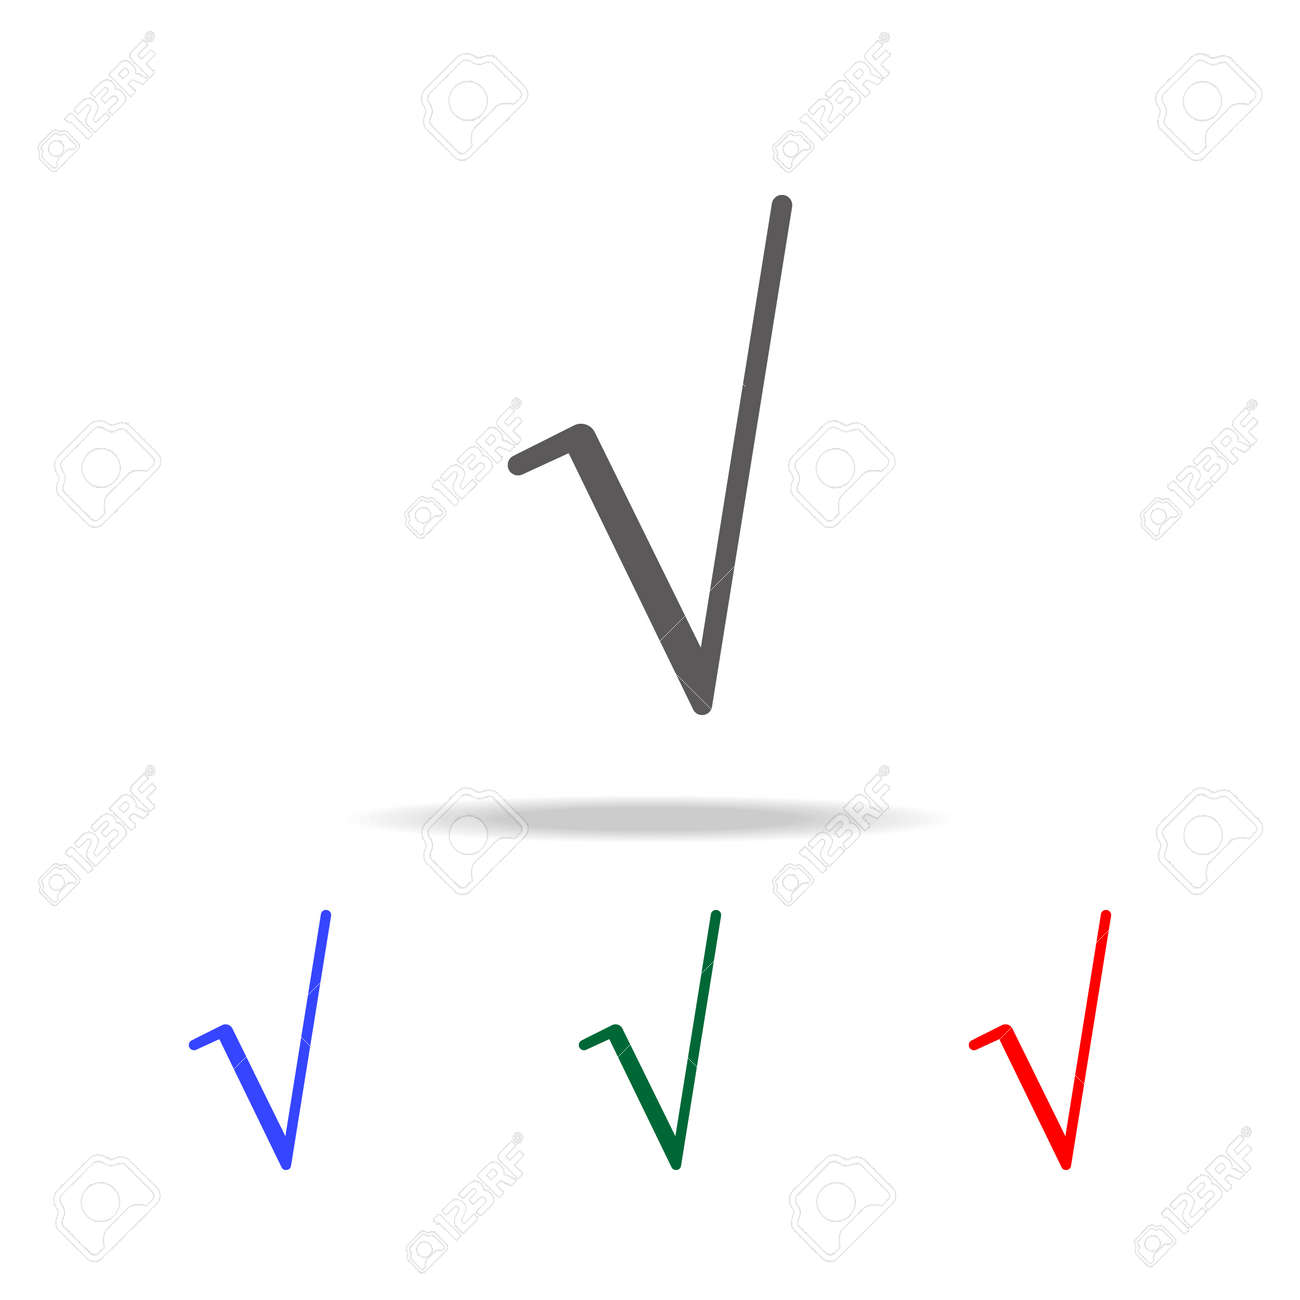 Square Root Symbol Icon Elements In Multi Colored Icons For